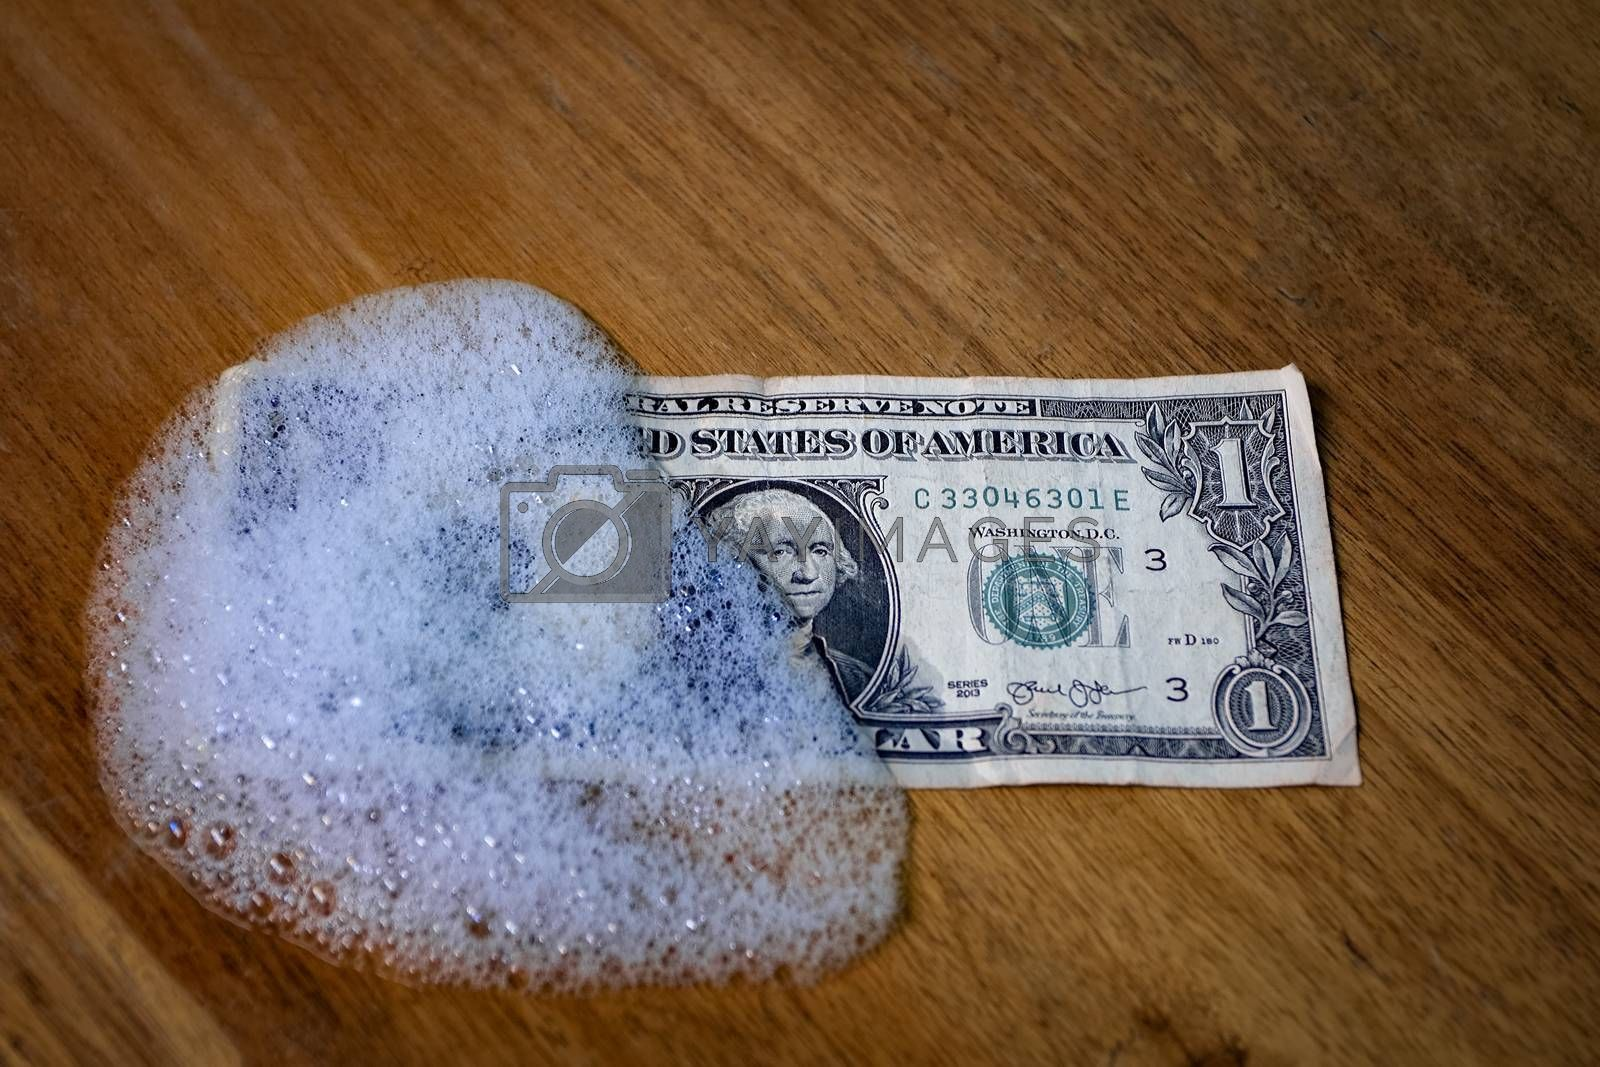 A one dollar bill partially covered by foam on a wooden surface